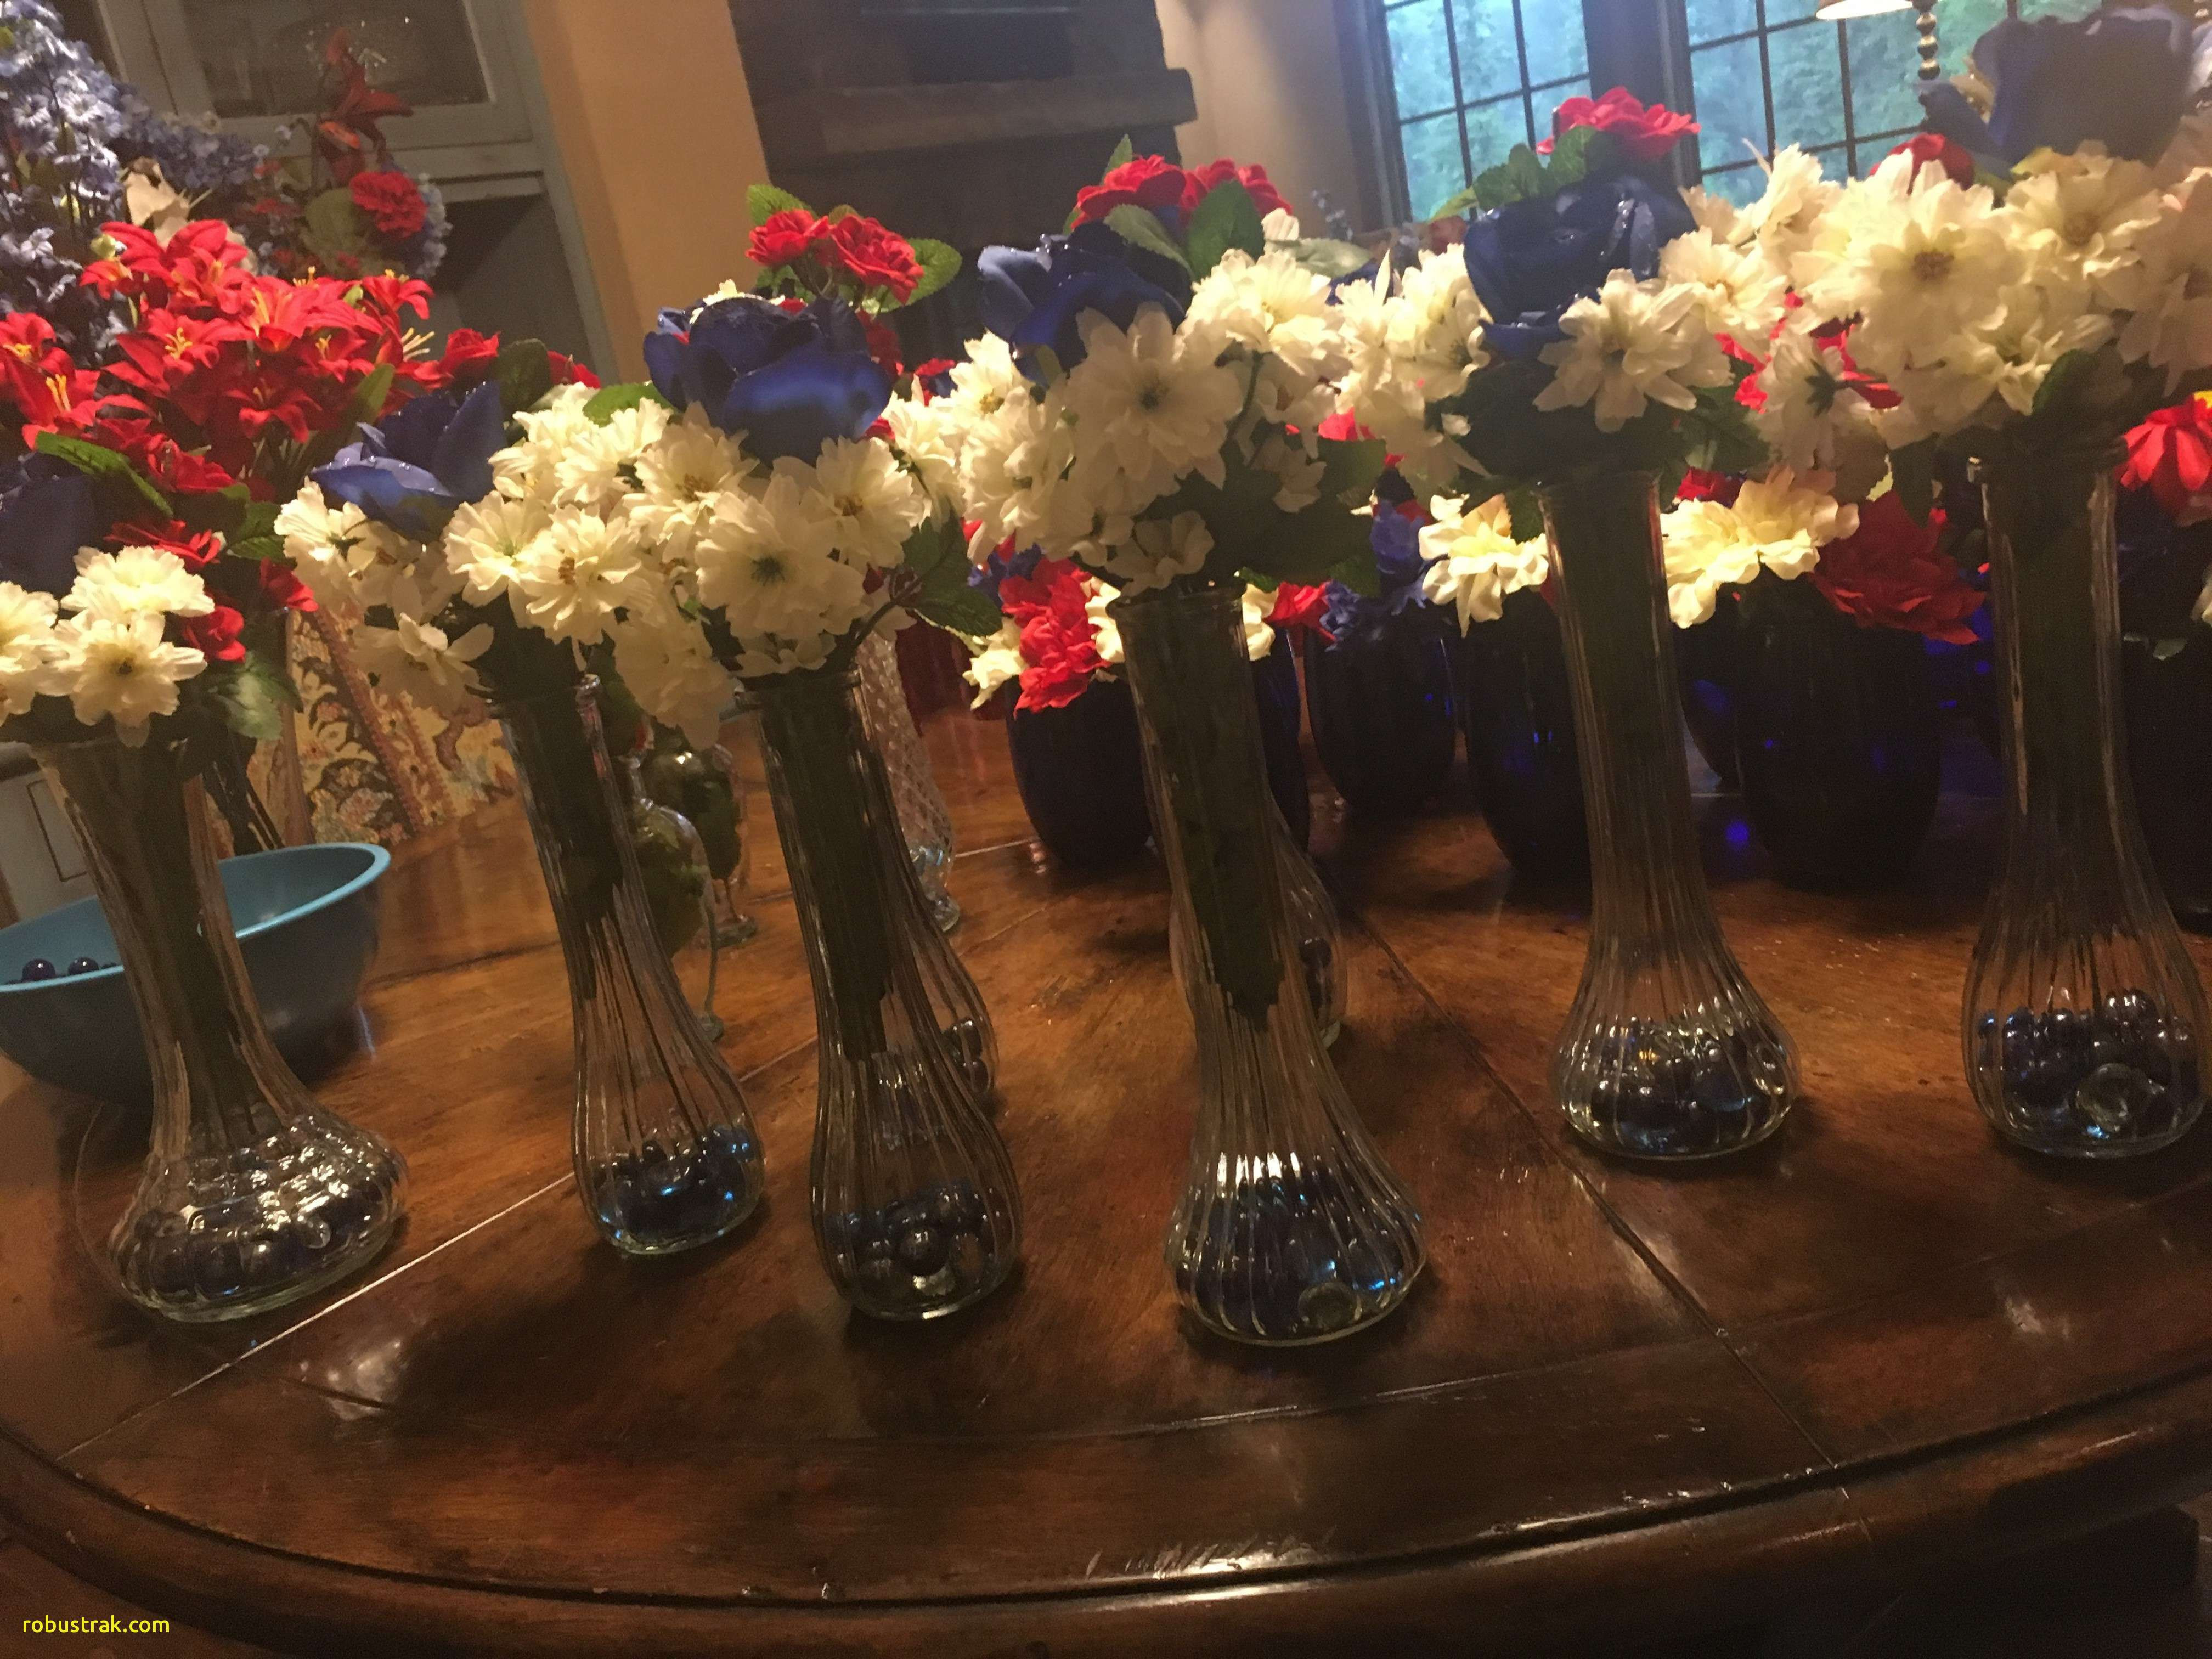 plastic eiffel tower vases of best of hydrangea decorating ideas home design ideas for dollar tree wedding decorations awesome h vases dollar vase i 0d design ideas hydrangea wedding